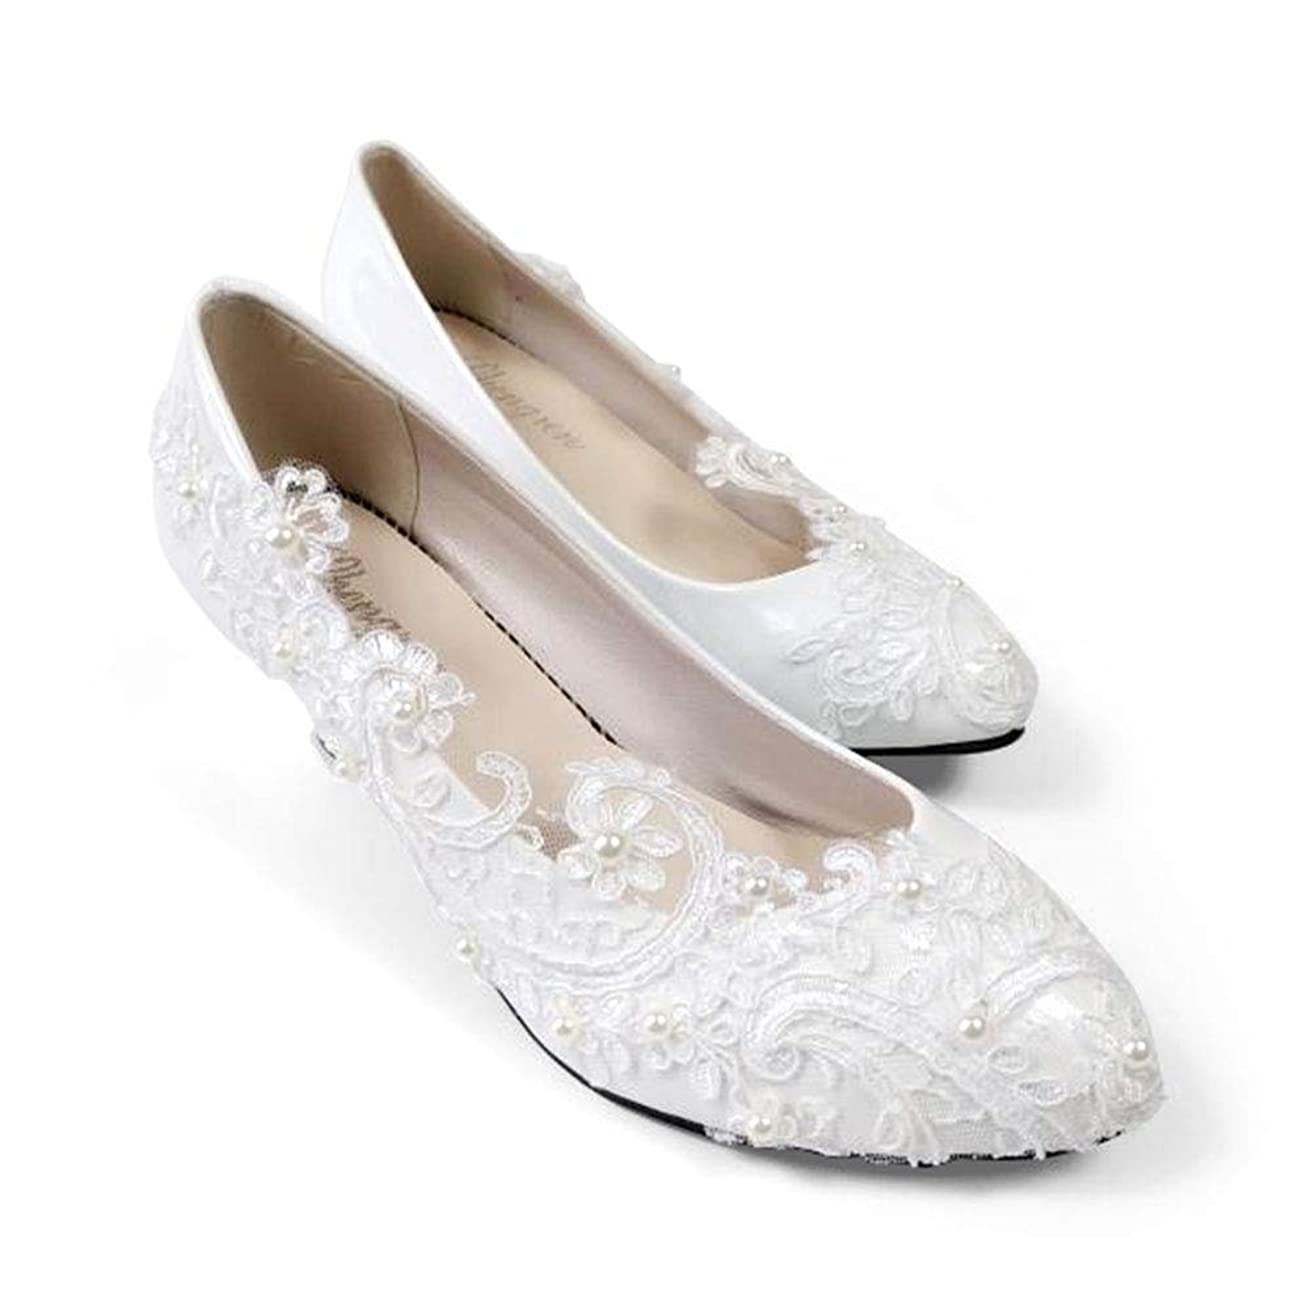 """Bridal Wedding Shoes Closed Toe Dress Pumps Stiletto Heel with Stitching Lace,2.2"""""""